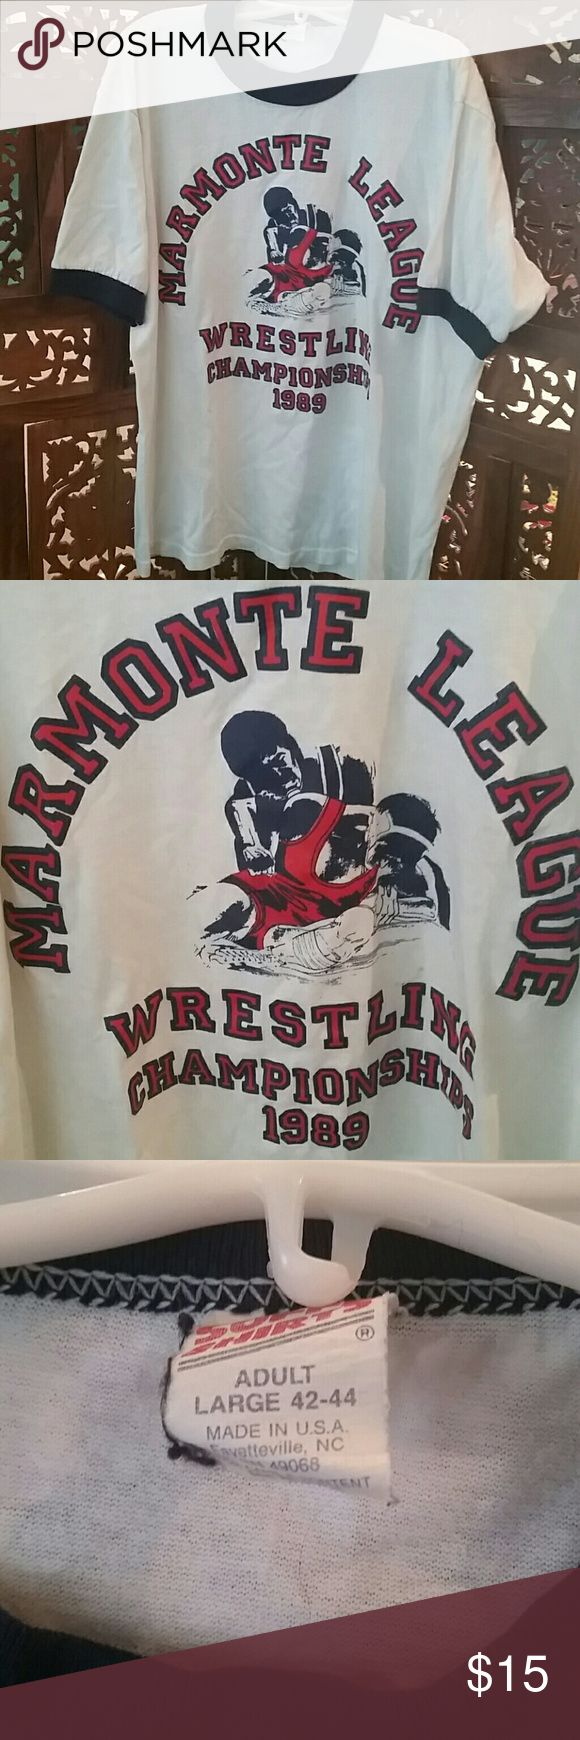 "Vintage 1989 Wrestling Championship Ringer Tee 1989 Marmonte  League Wrestling Championships ringer T-shirt. White with vibrant red and navy blue iron on letters and wrestlers. Marked a large 42-44, but seems smaller. Measures about 18"" flat across chest armpit to armpit and 22.5"" shoulder to hem. Very soft 50% cotton, 50% polyester. Fair to good condition. A few light spots and two small holes at the back left shoulder. Also, I have a black dog whose hair decided to adhere to this shirt…"